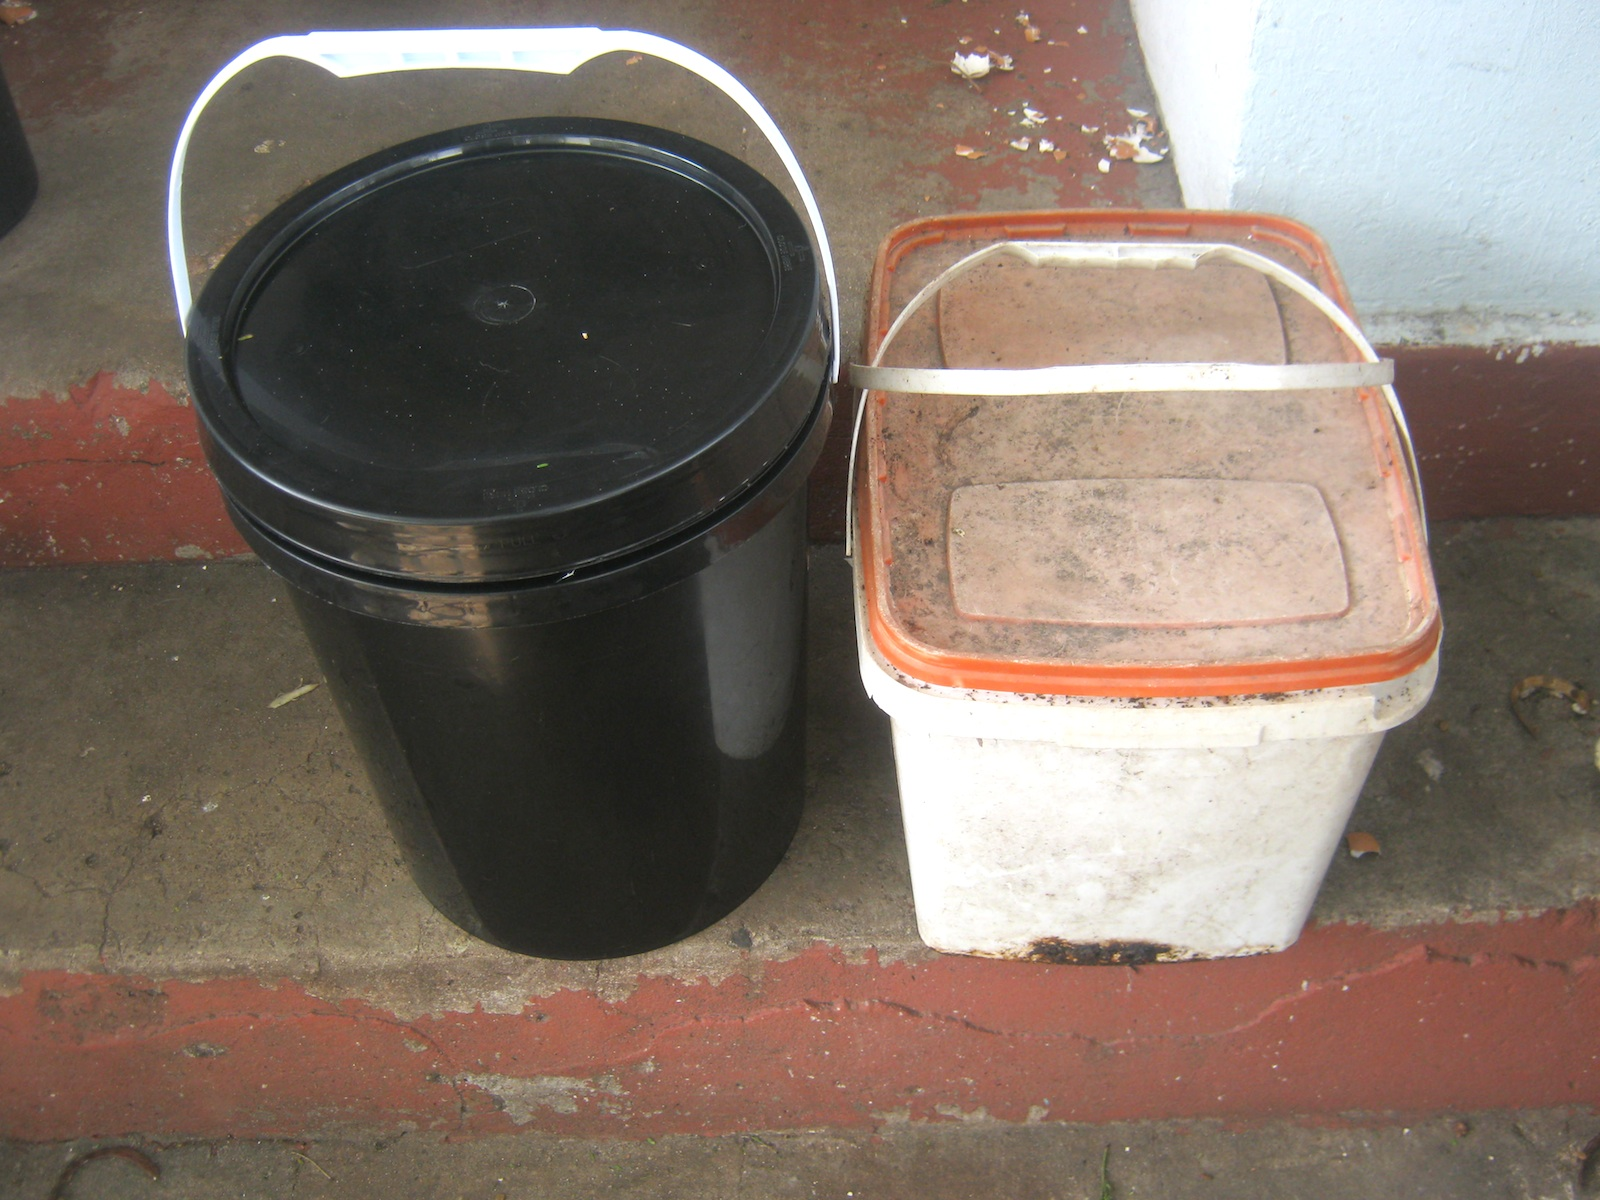 2 very basic worm bins. The white one has been in use for years.